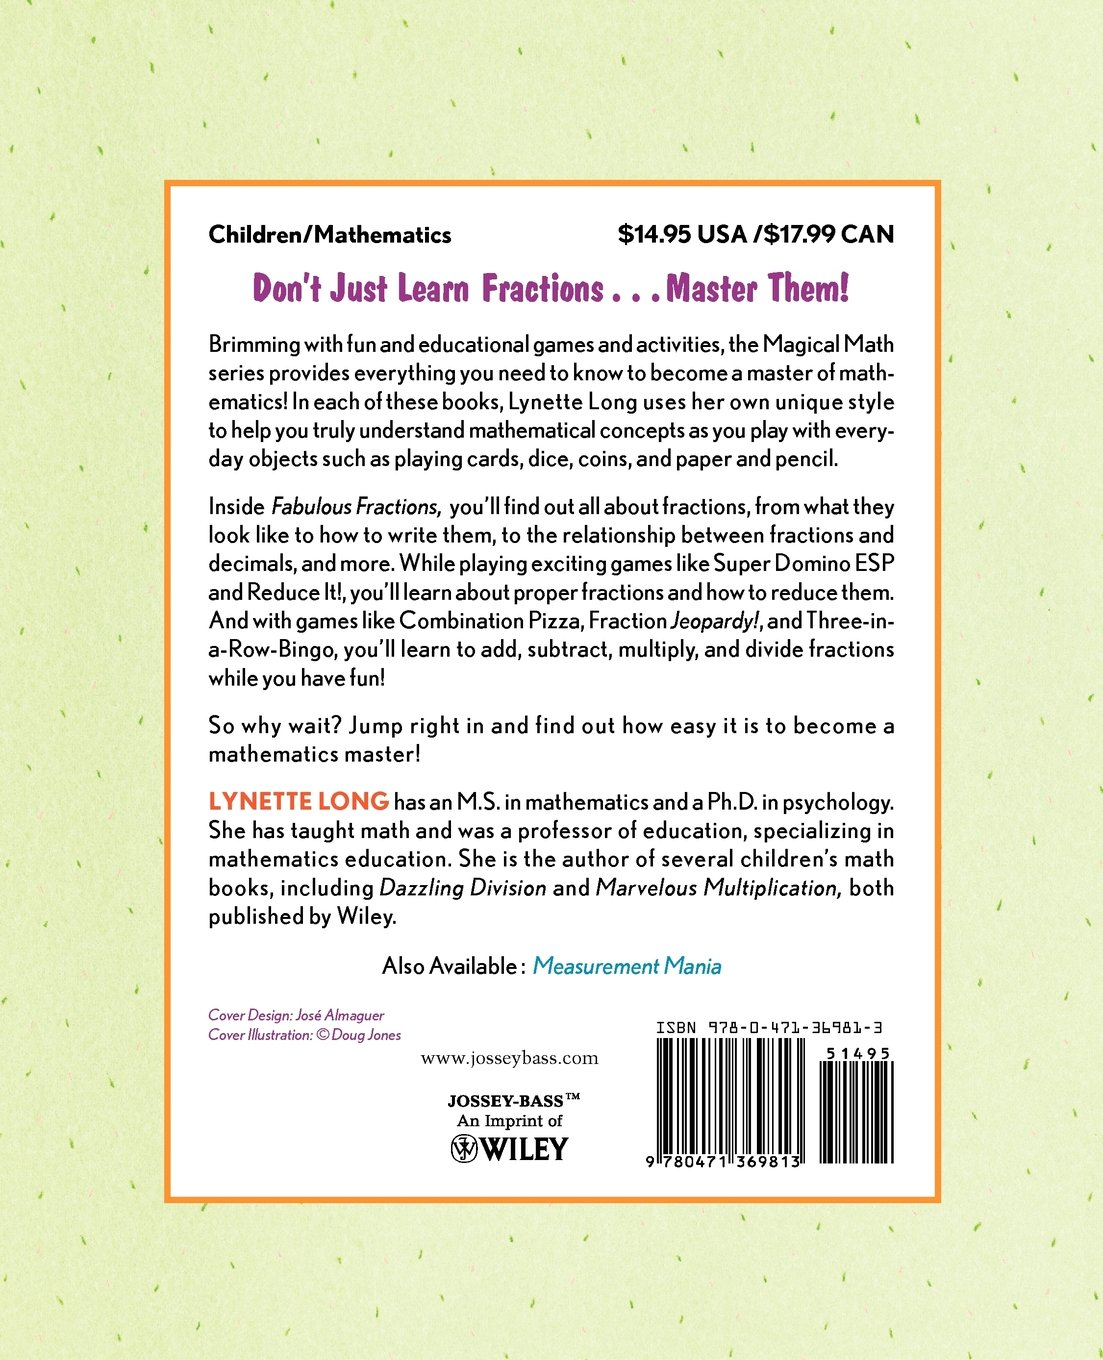 Fabulous Fractions: Games, Puzzles, And Activities That Make Math Easy And  Fun: Lynette Long, Tina Cashwalsh: 9780471369813: Amazon: Books